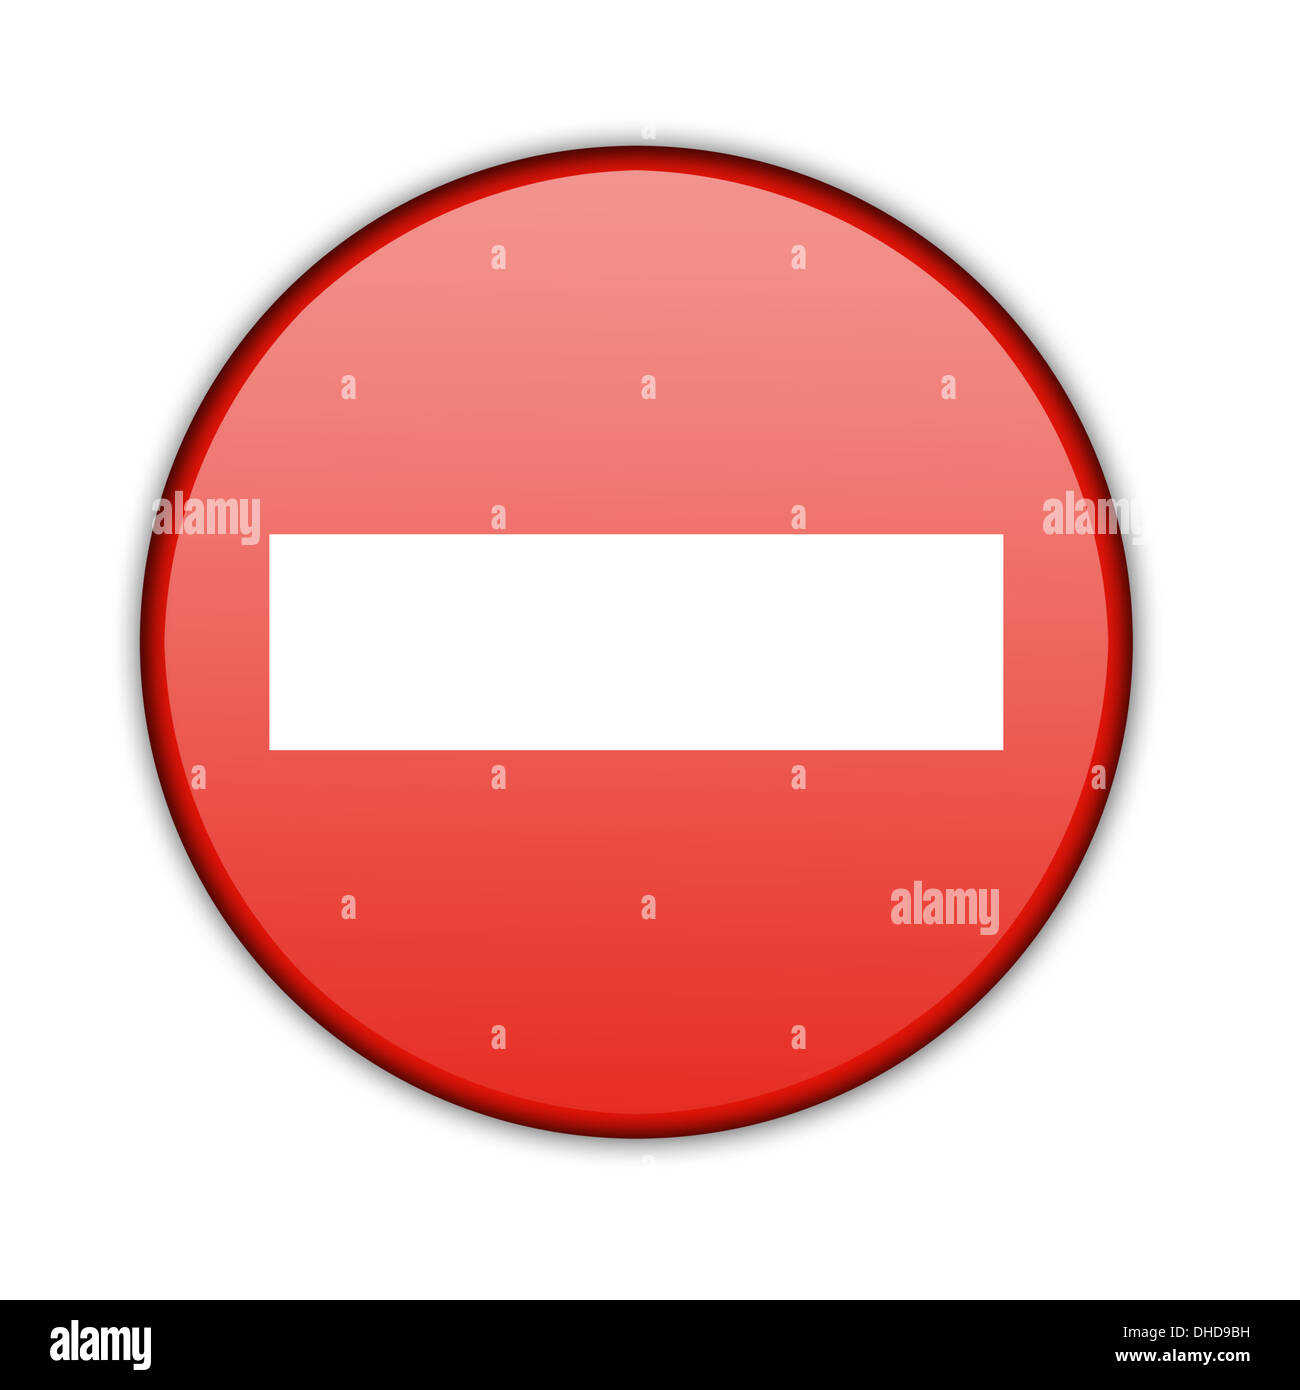 Illustration of a traffic sign - No Entry. Stock Photo